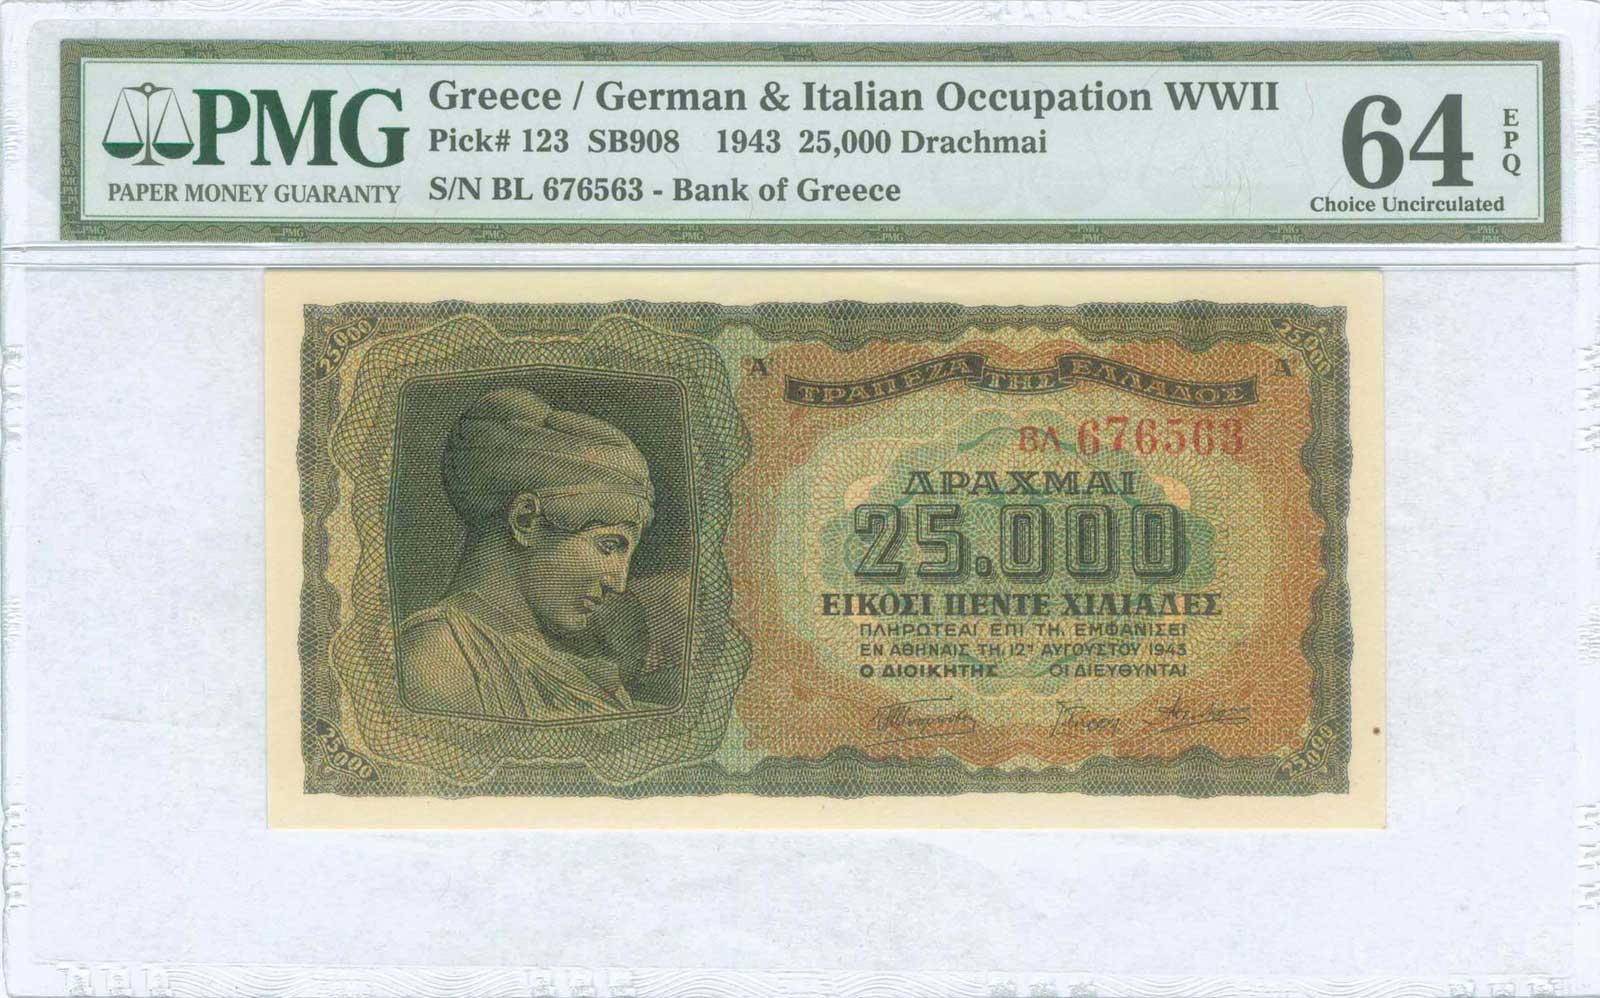 Lot 9326 - GREECE-  PAPER MONEY - BANKNOTES WWII  issued  banknotes -  A. Karamitsos Public & LIVE Bid Auction 610 Coins, Medals & Banknotes